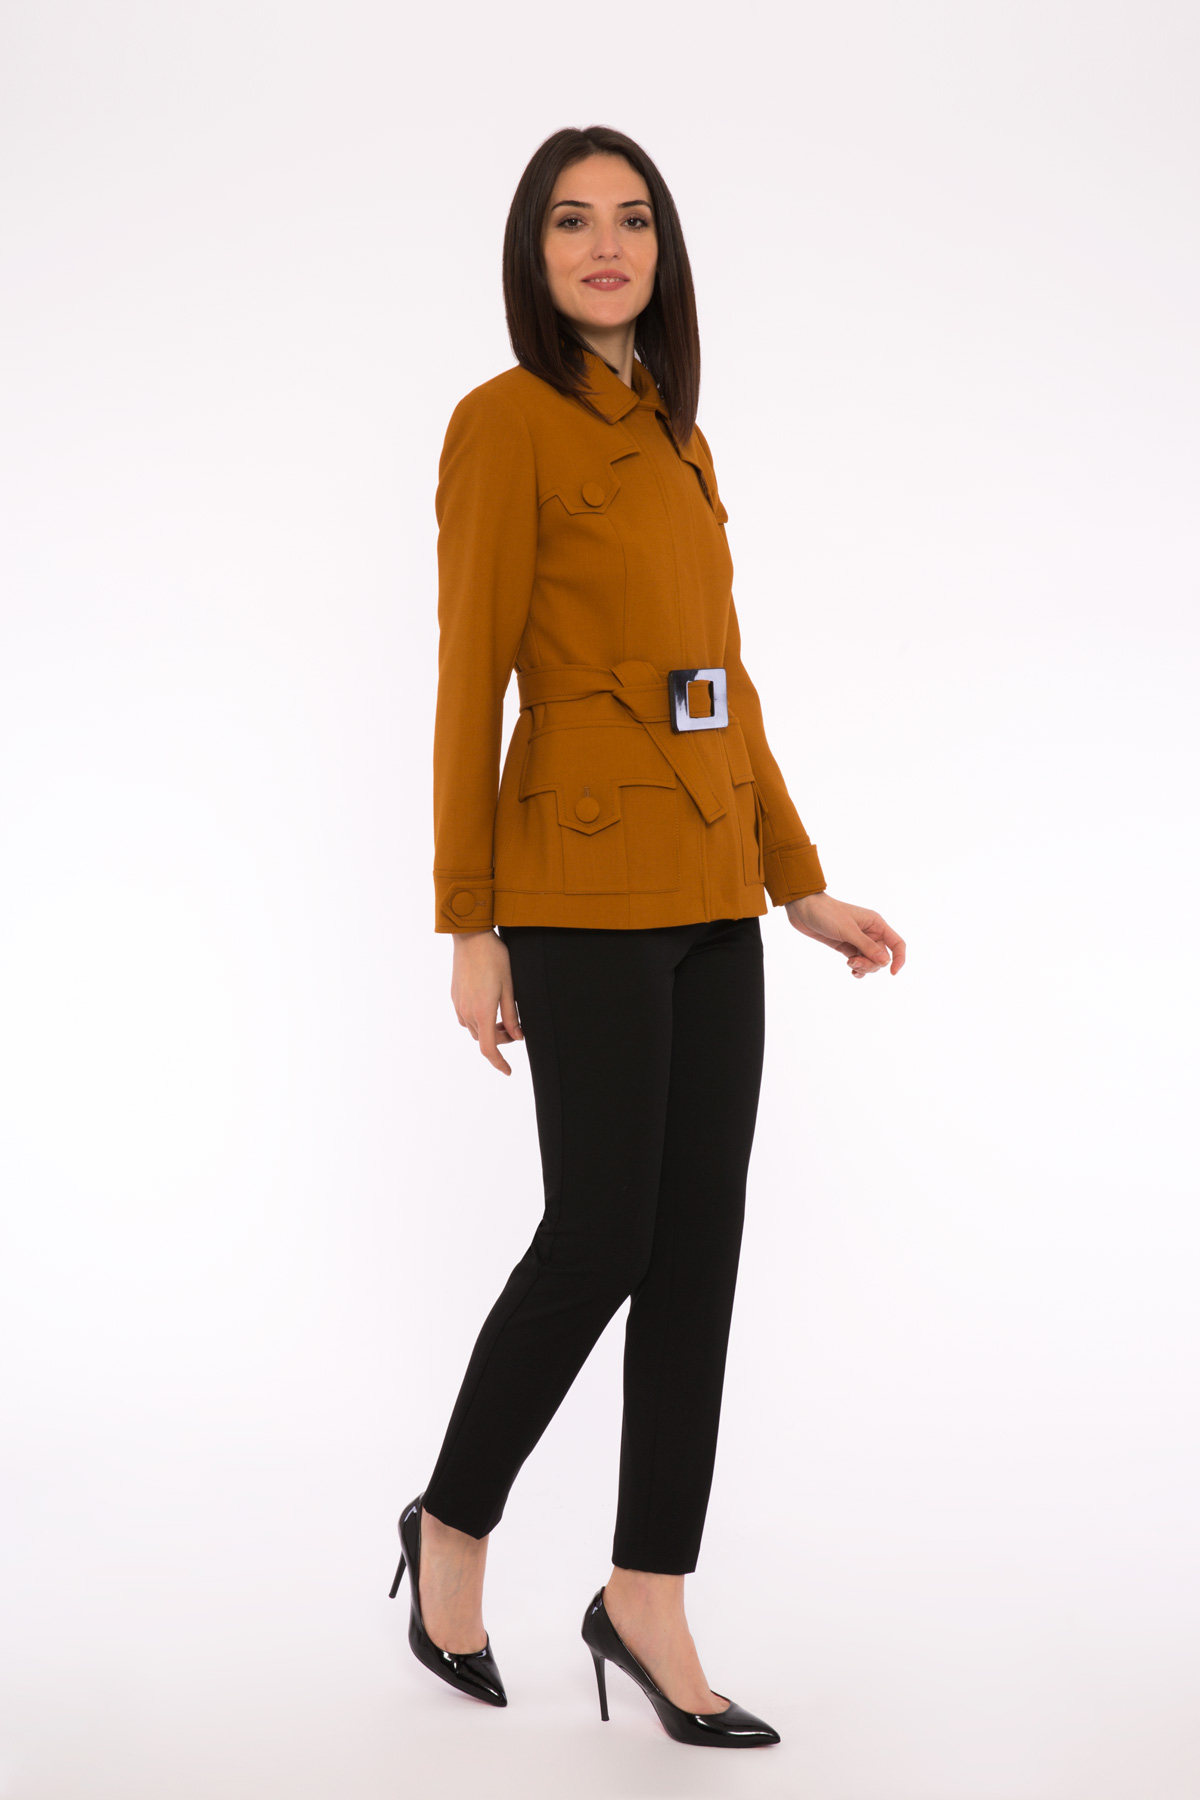 Belt Detailed Jacket With Pockets And Buttons